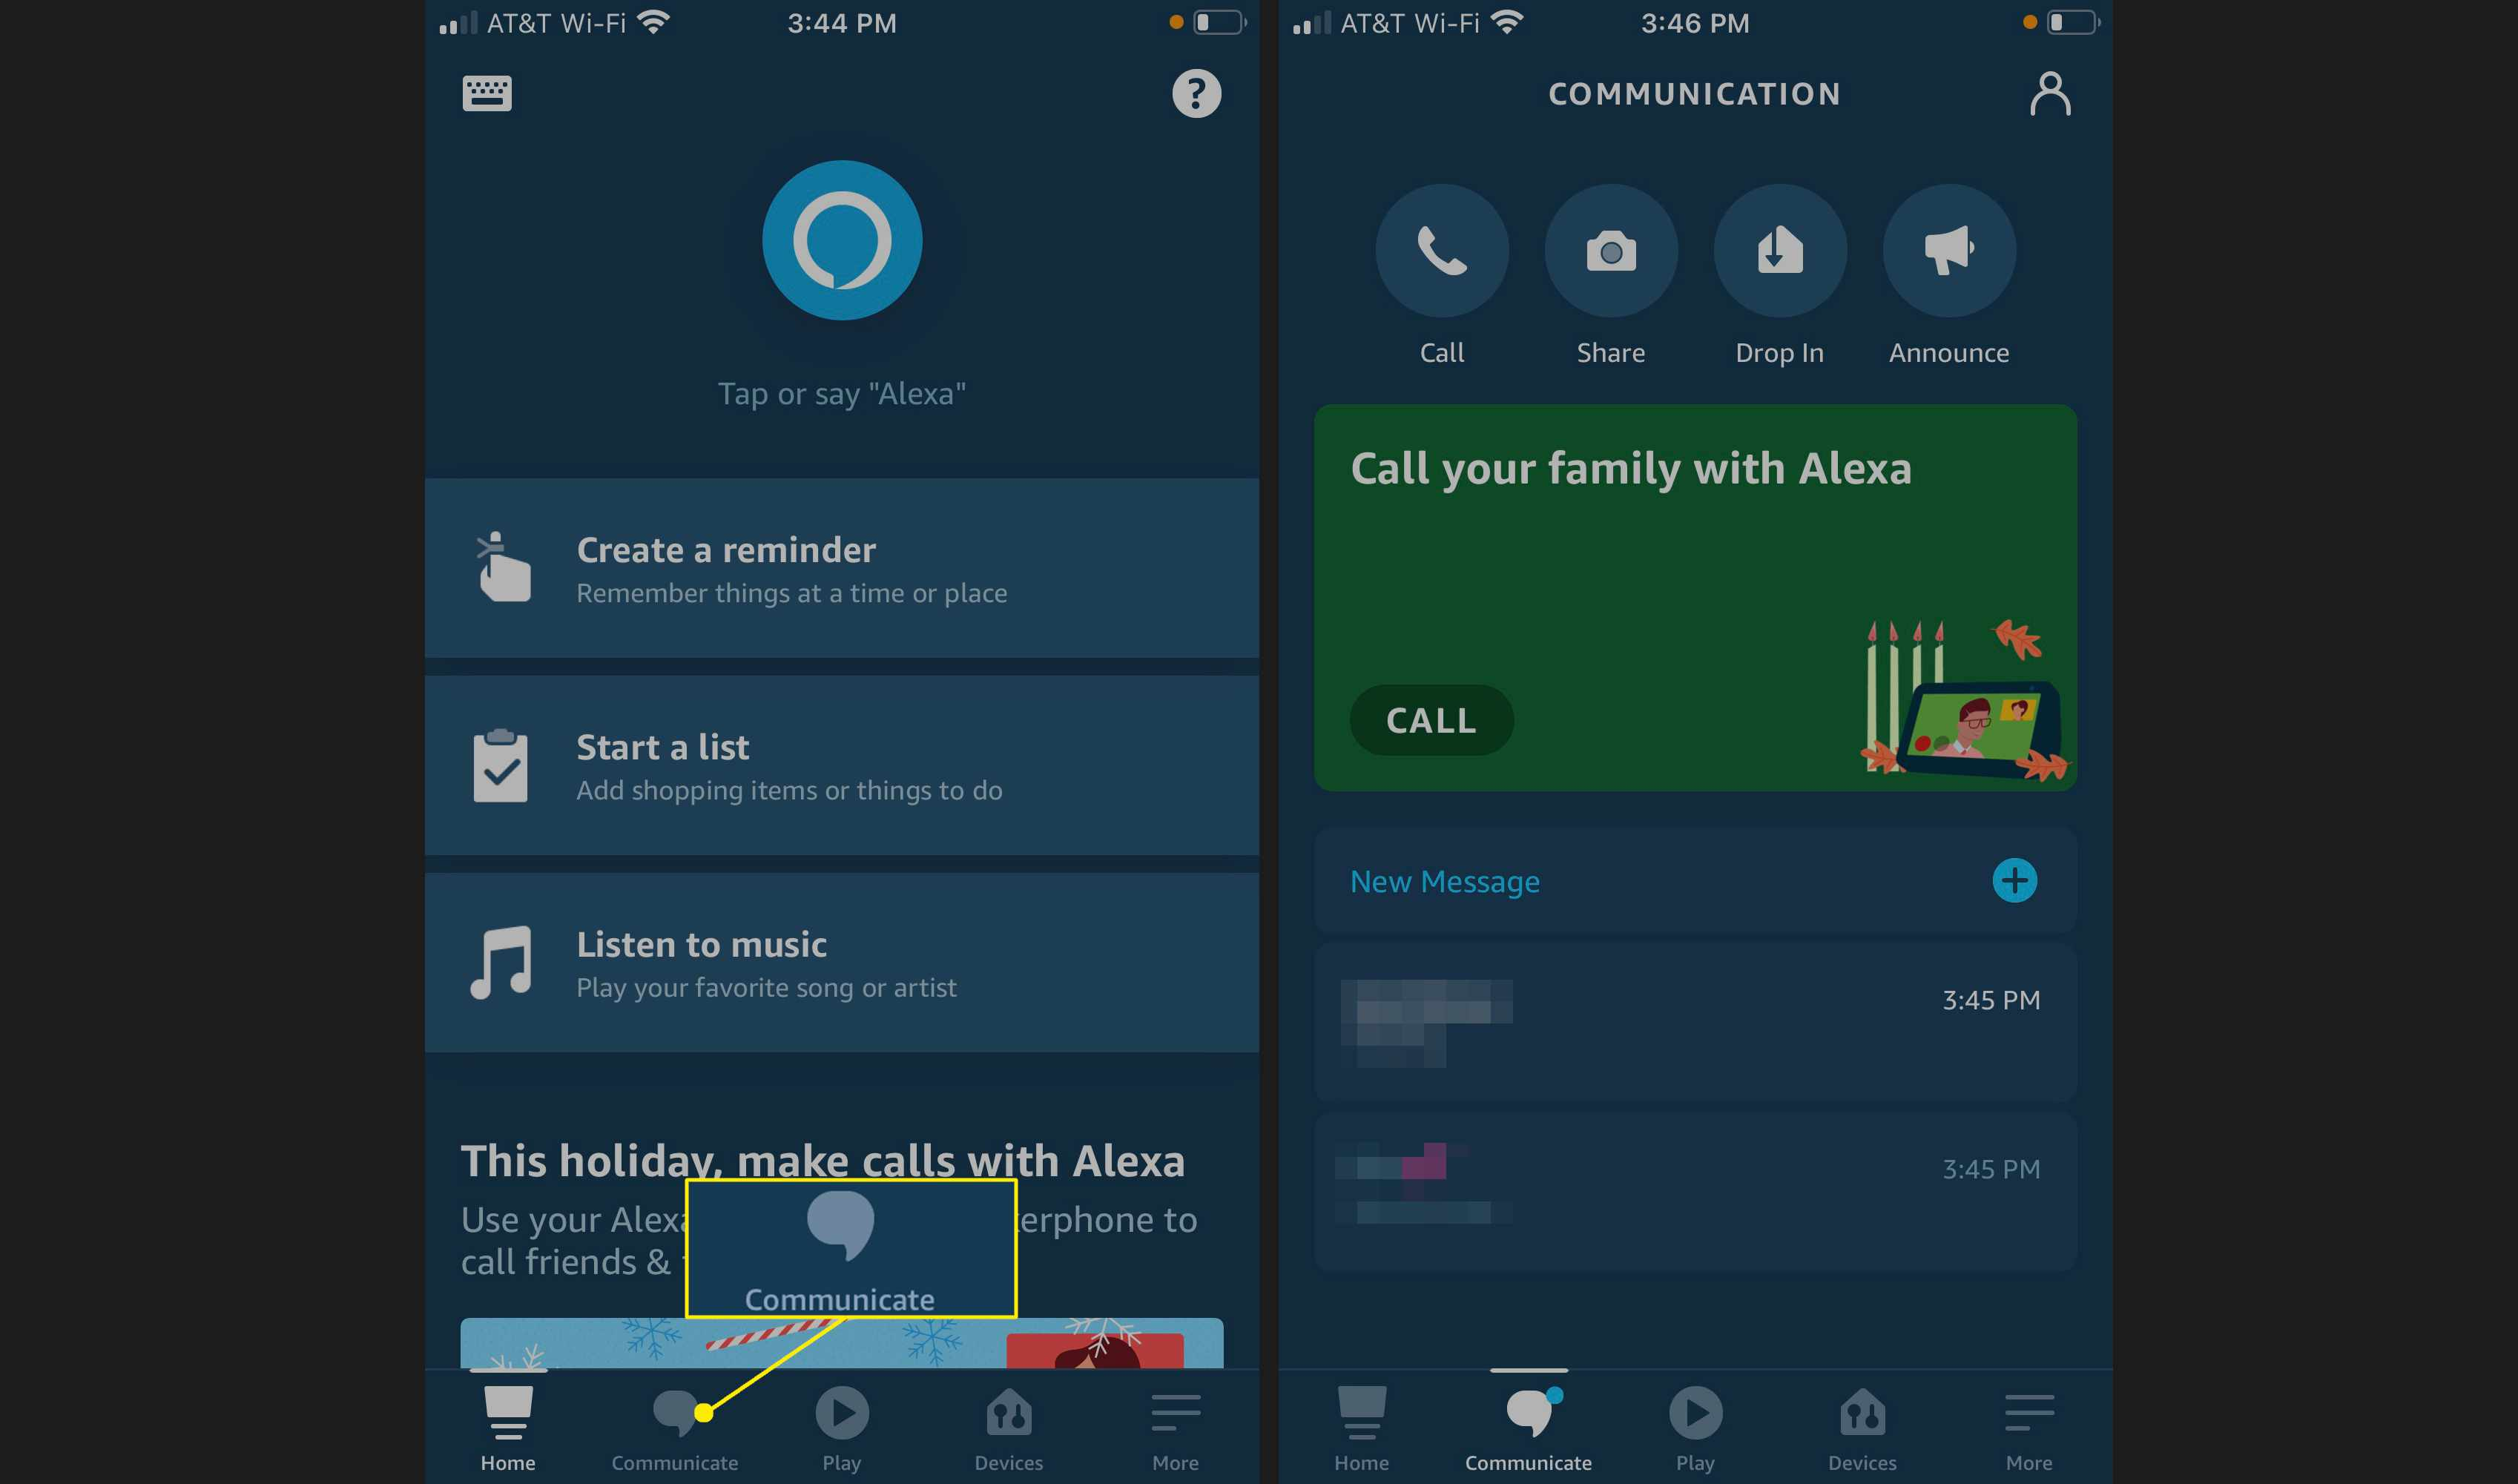 Tap the Communicate tab to make calls to someone on your Contacts list, send photos to Alexa devices, use the Drop-In feature, or make an announcement via compatible Echo devices.